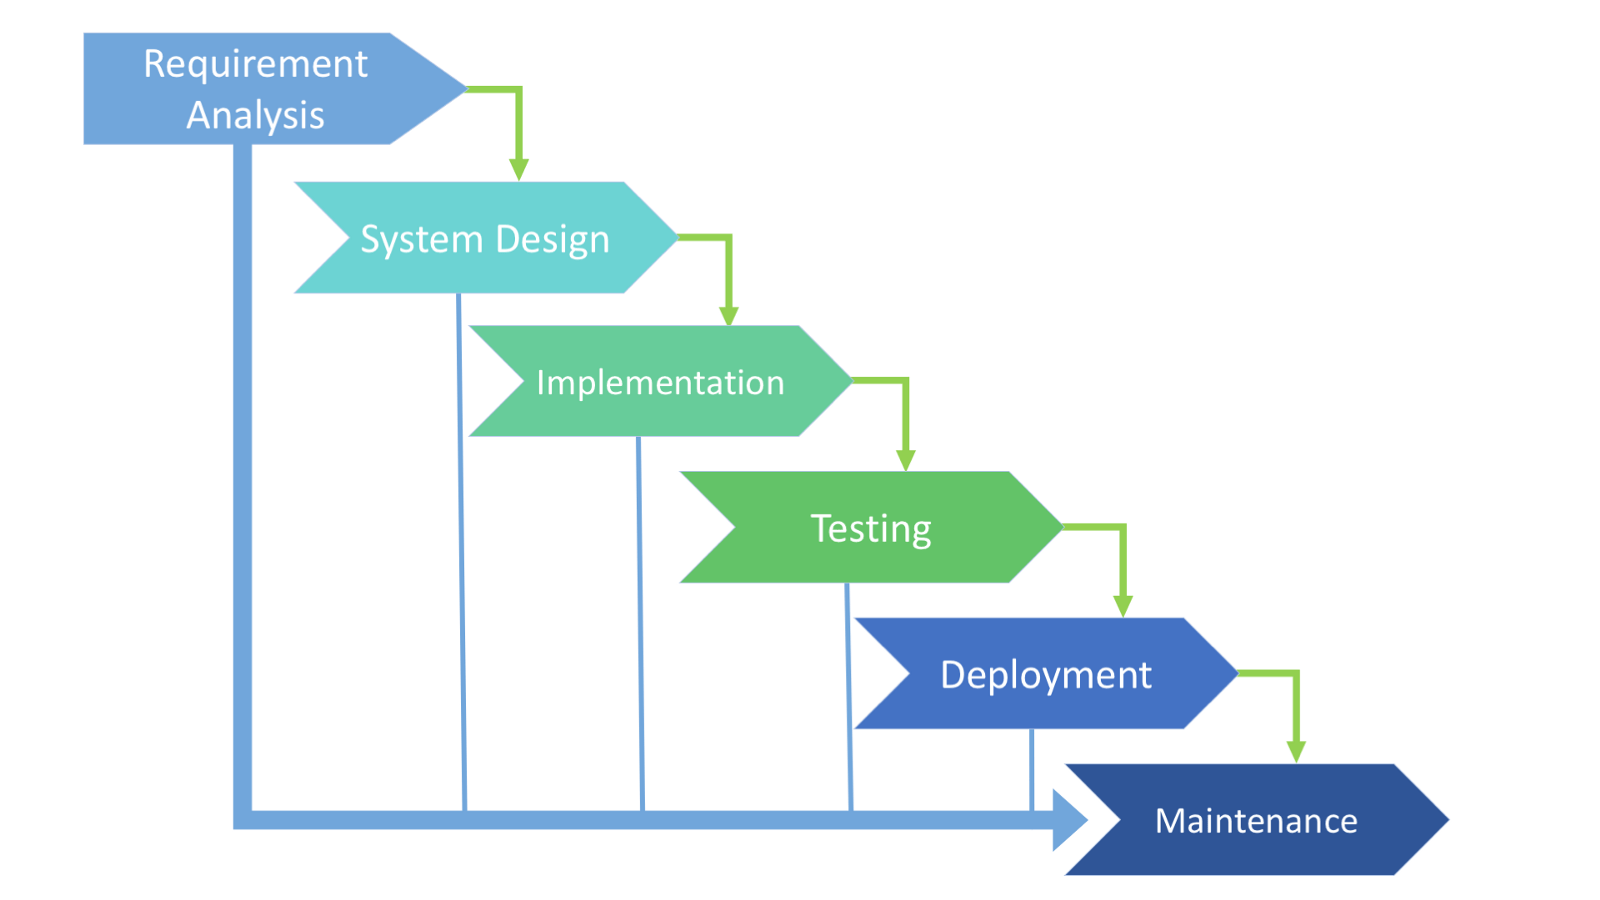 model in software testing v diagram rca connector wiring sdlc models explained agile waterfall shaped